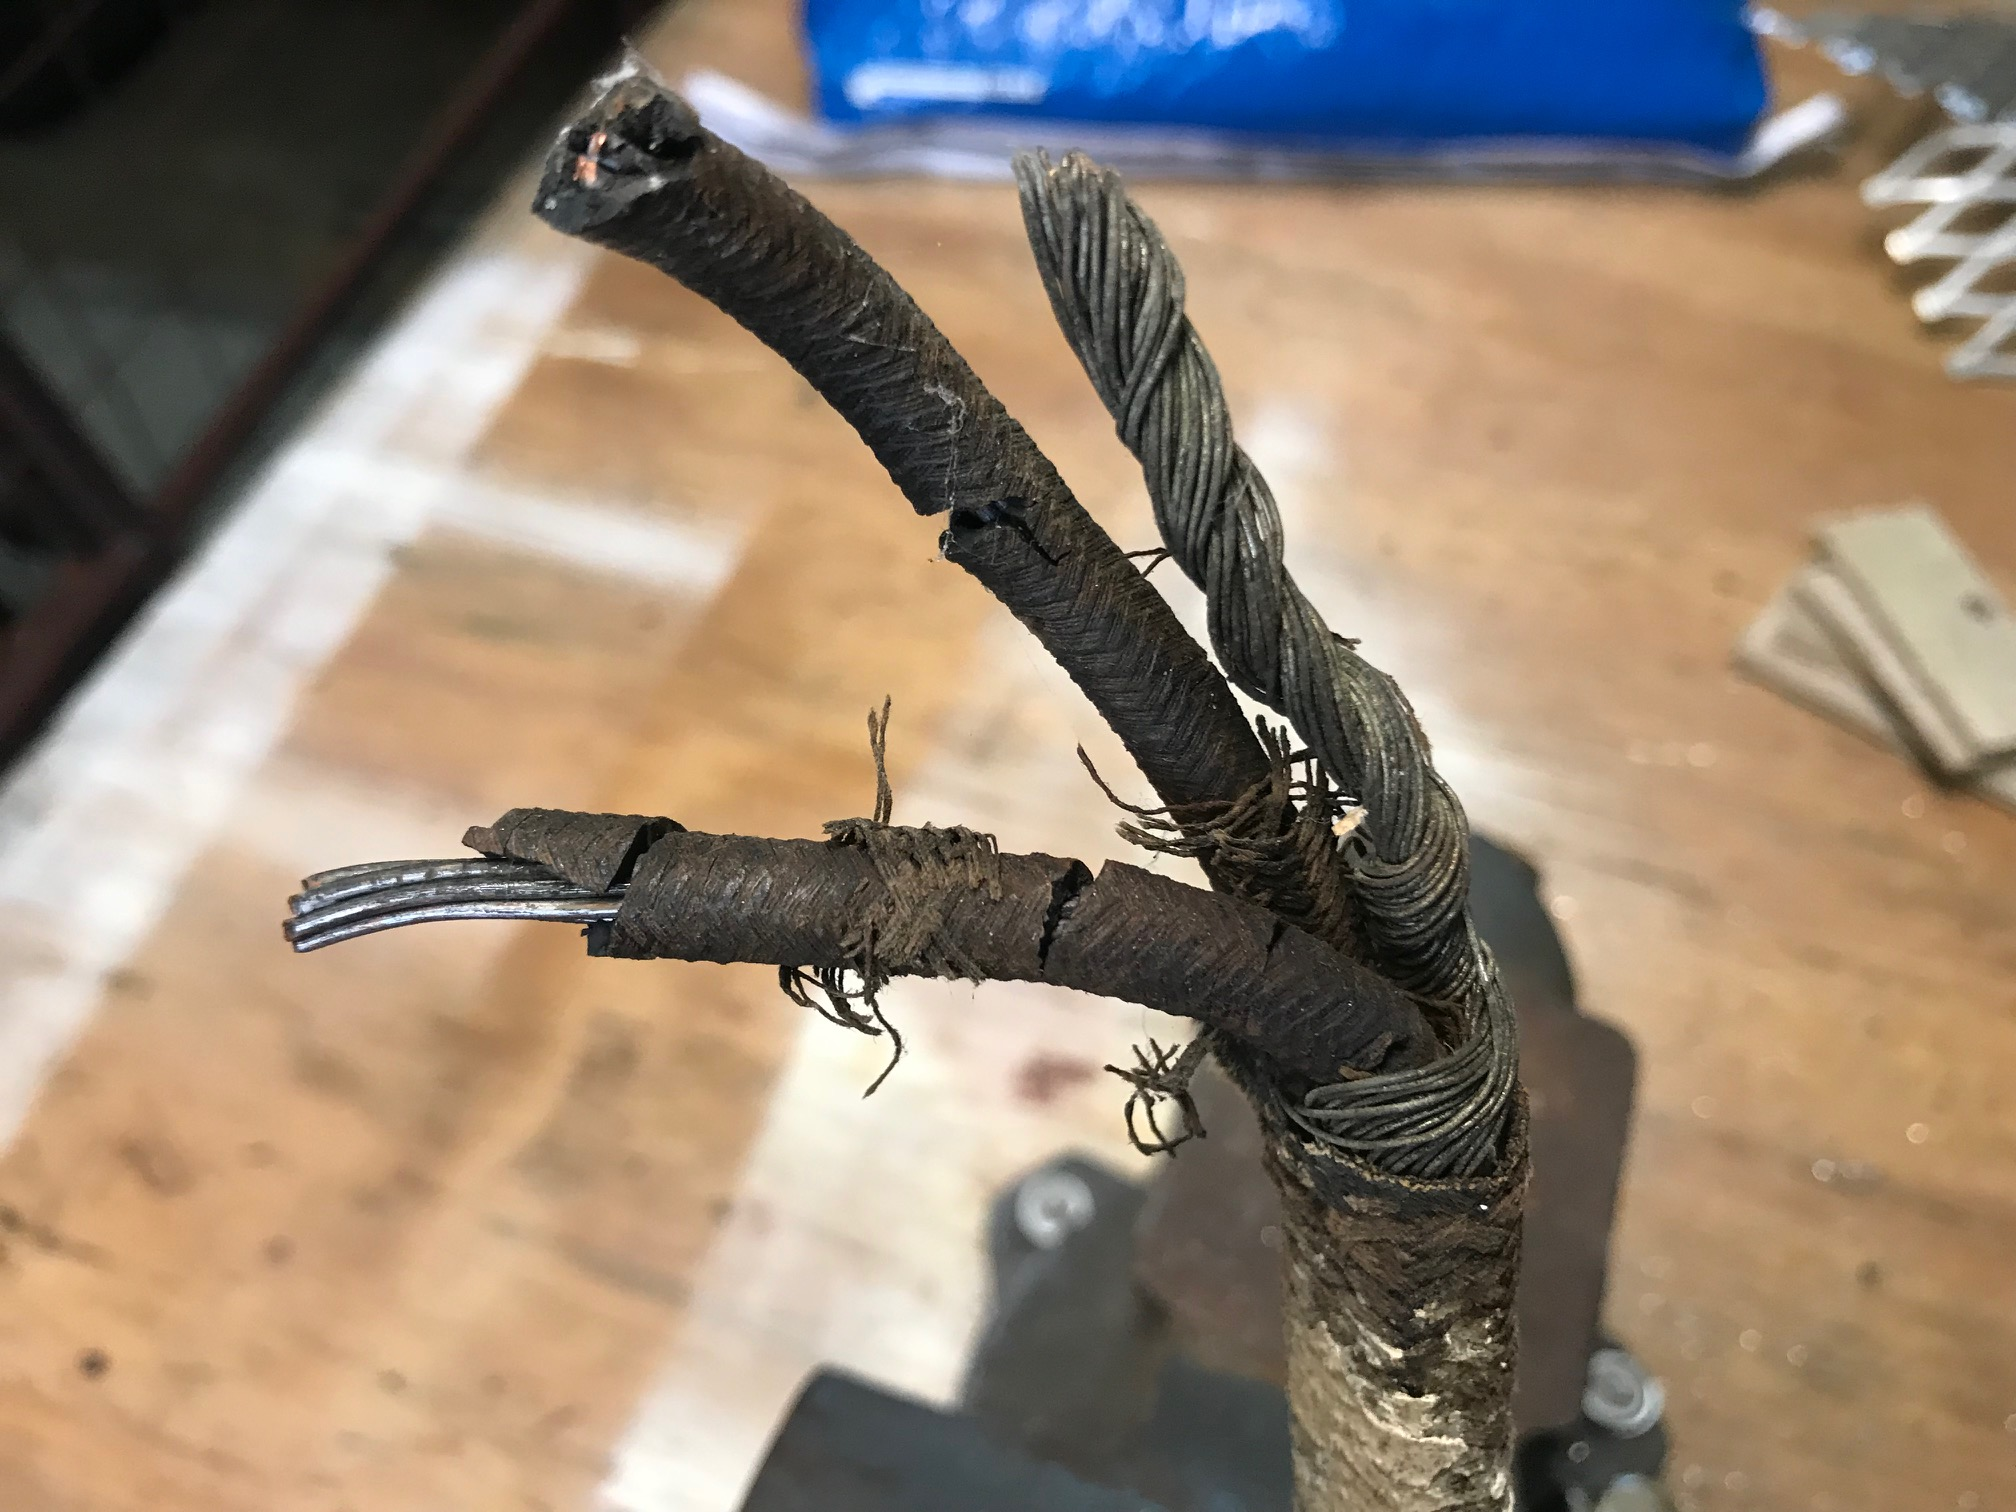 Blog Cornerstone Home Inspection Group Llc Overheated Electrical Wiring Copper Rubber Insulated Cloth Was Commonly Used For Between The 1930s To 1950s And Is Frequently Misidentified By Inspectors